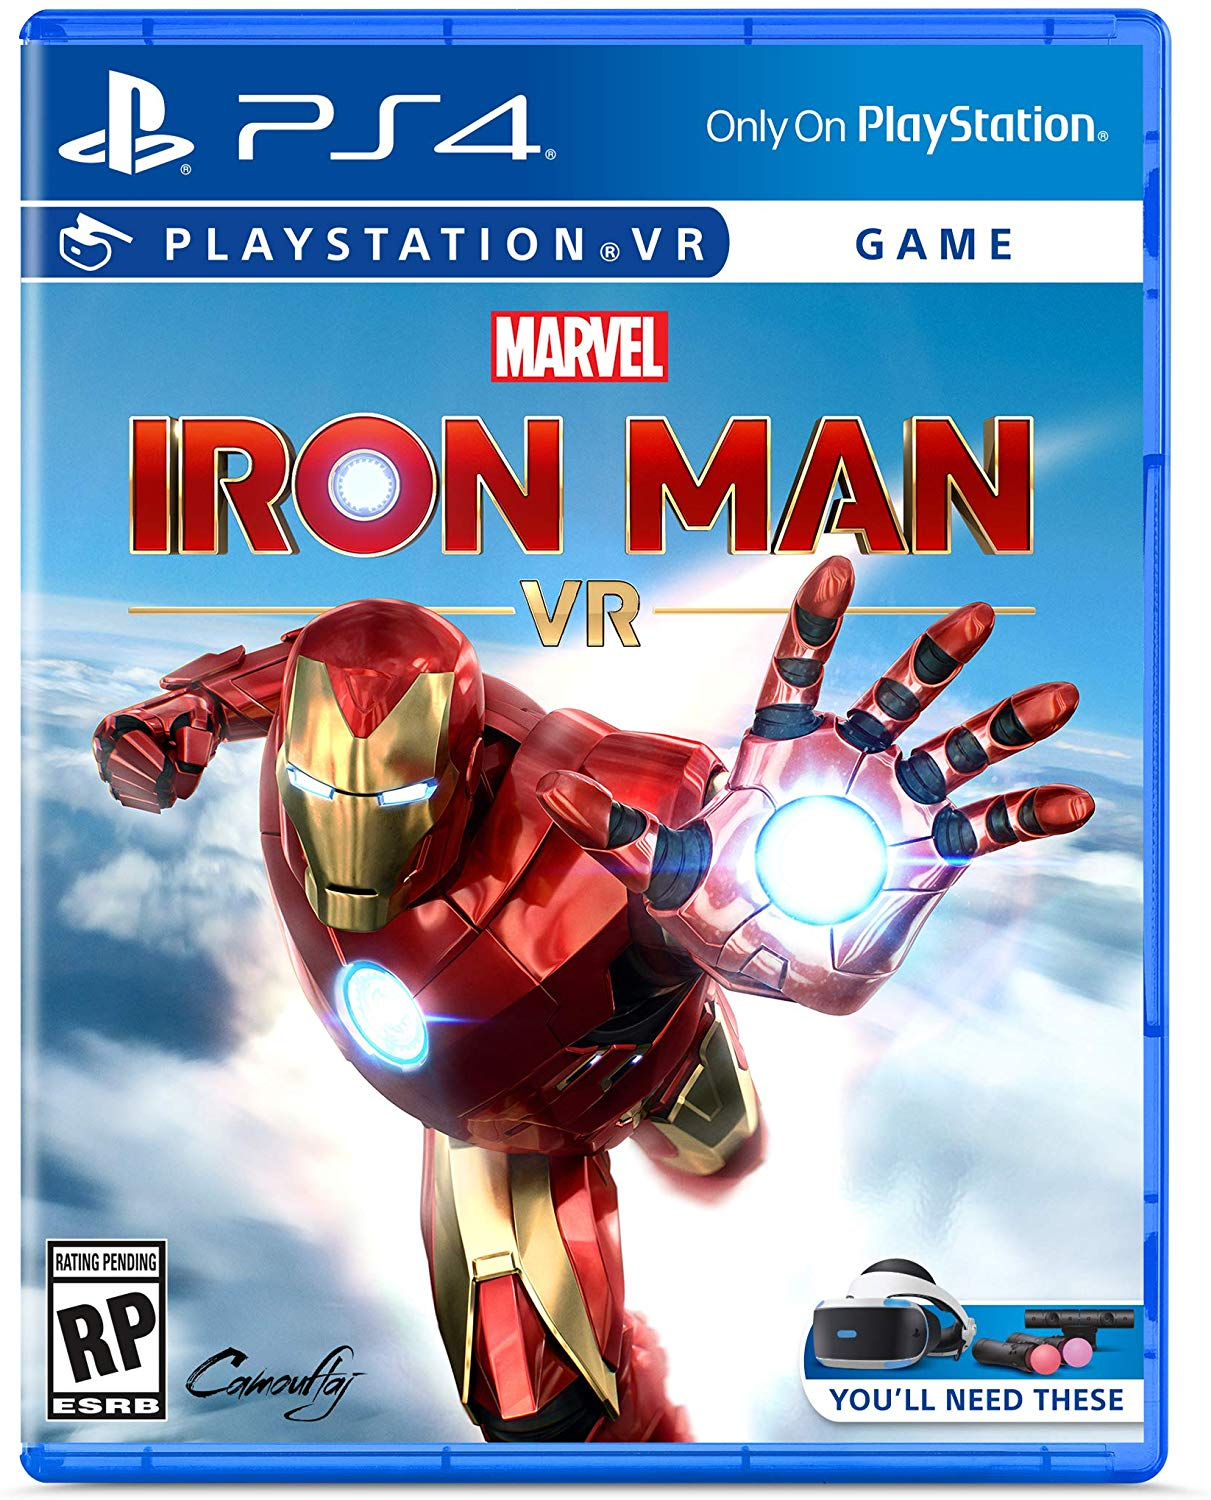 PS4 PSVR Marvel's Iron Man VR